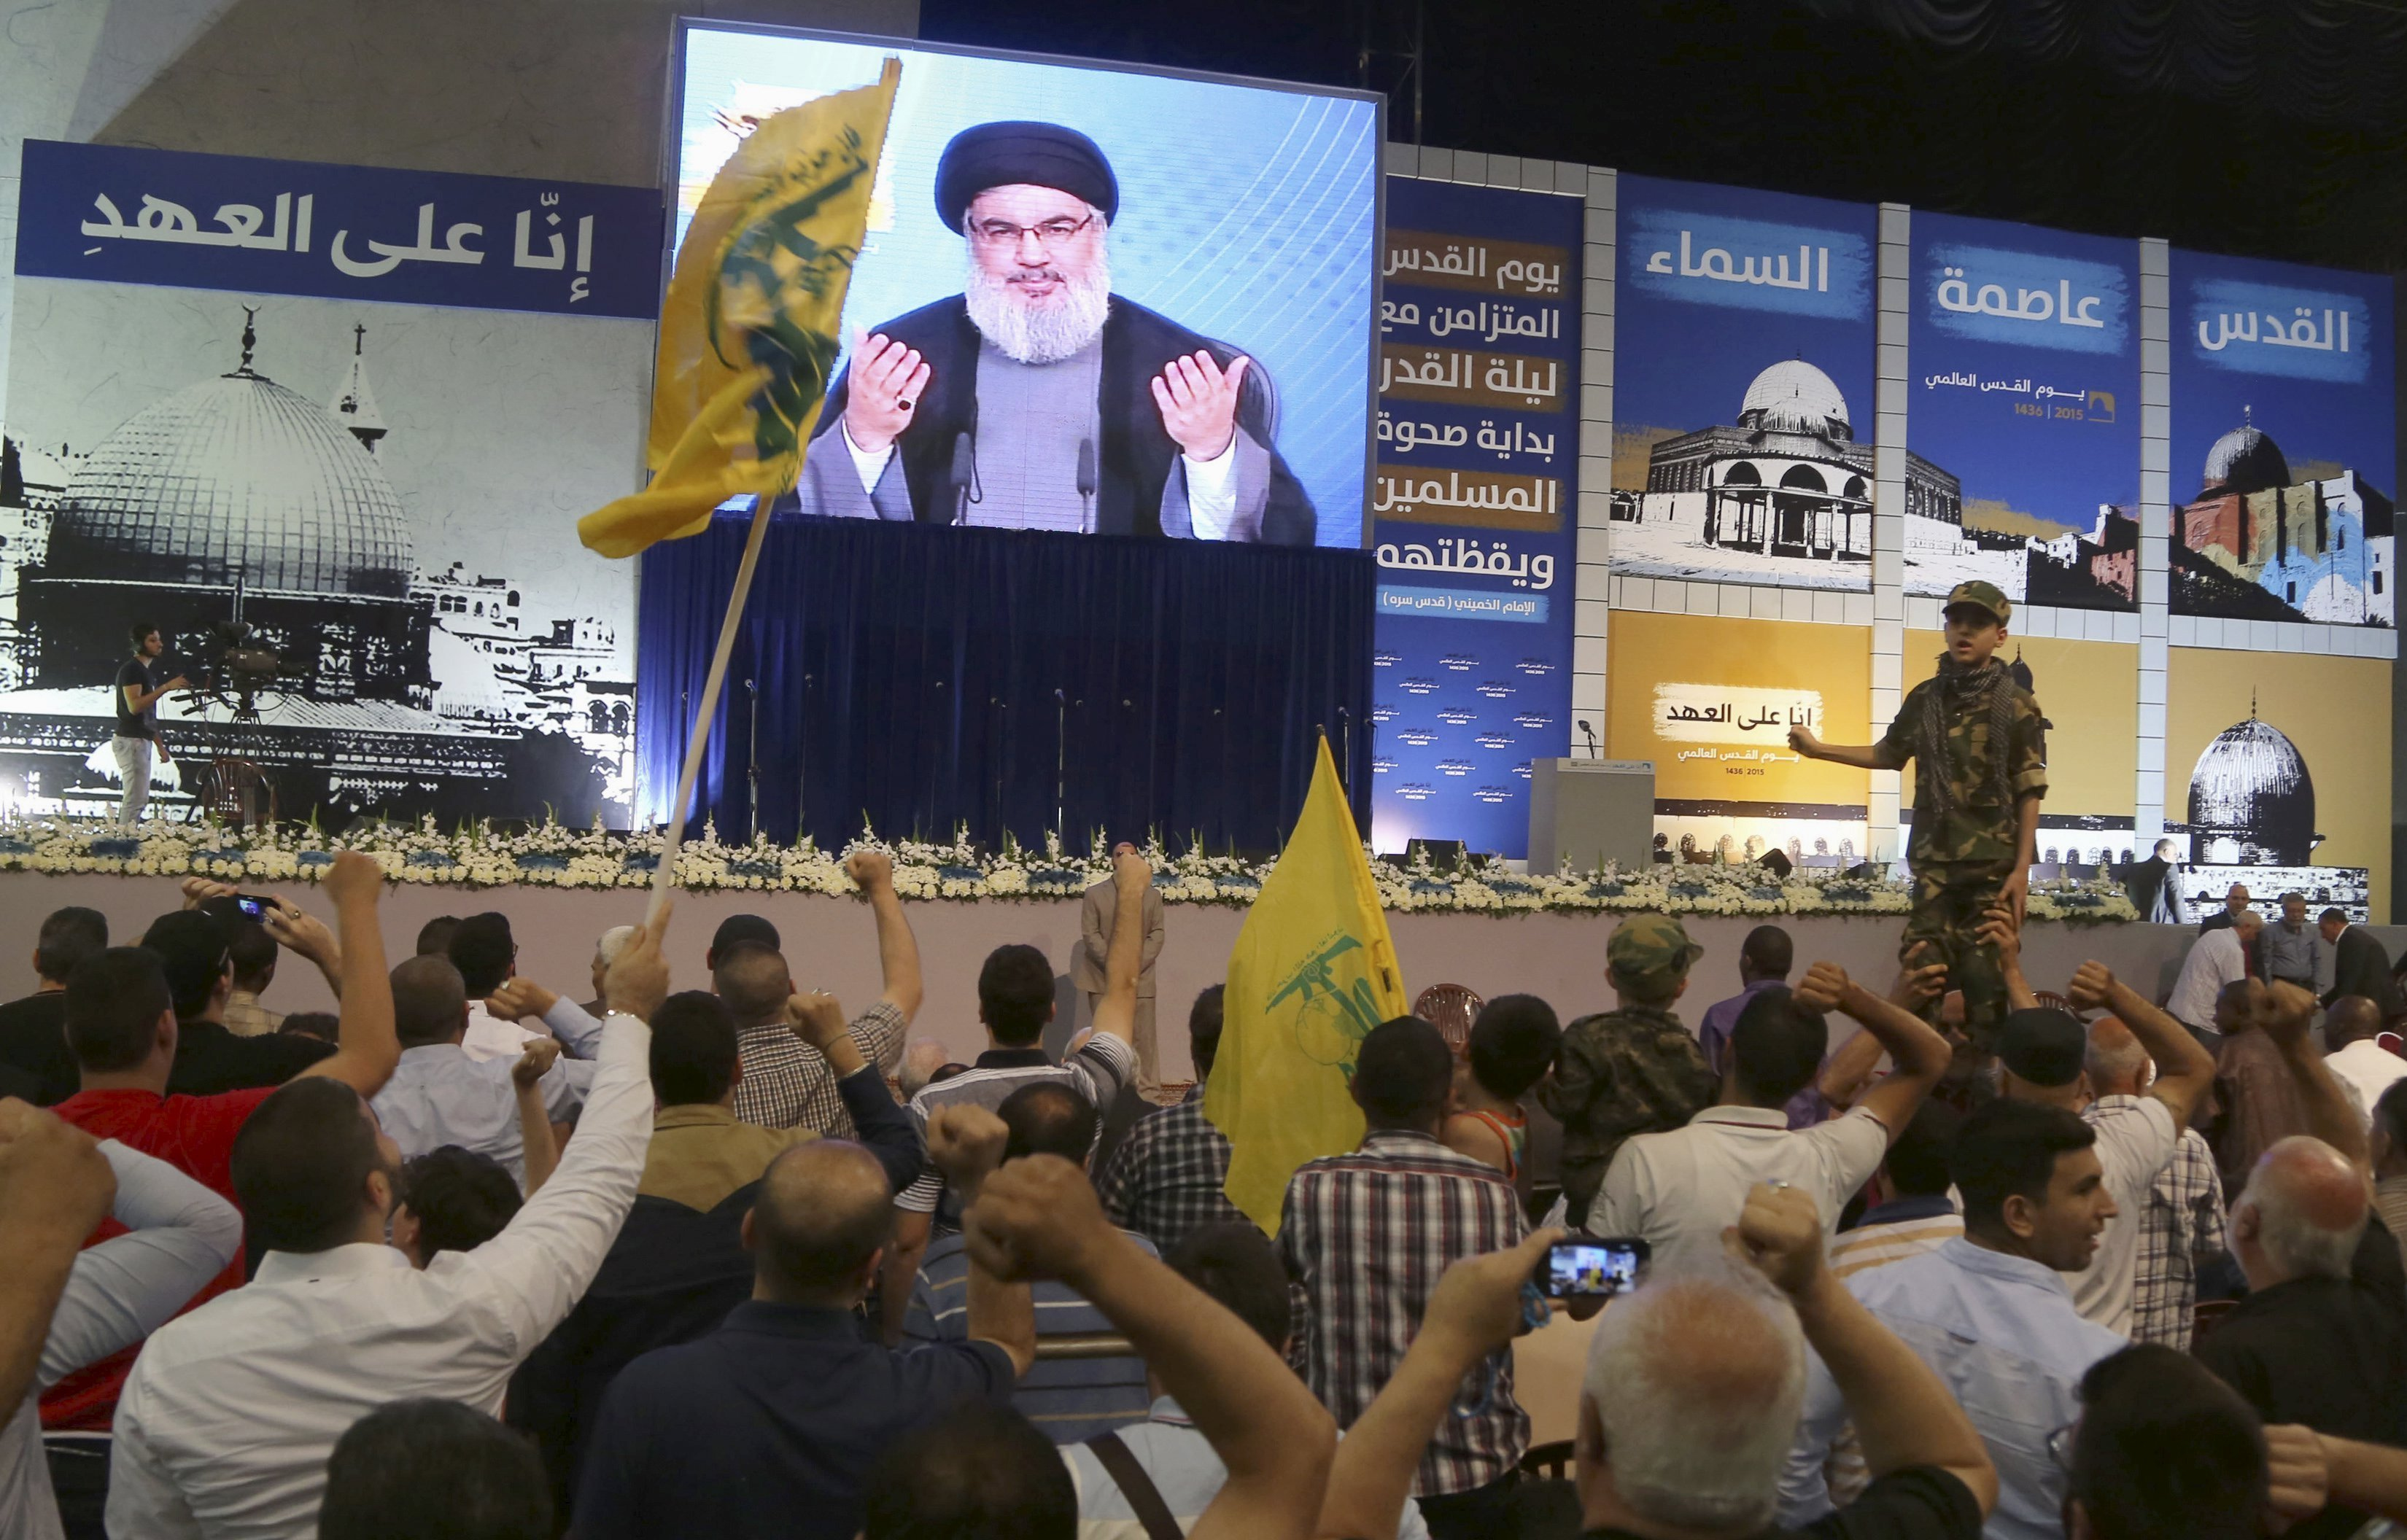 Supporters of Lebanon's Hezbollah leader Sayyed Hassan Nasrallah gesture as he appears on a screen during a rally to mark Quds (Jerusalem) Day in Beirut's southern suburbs July 10, 2015.